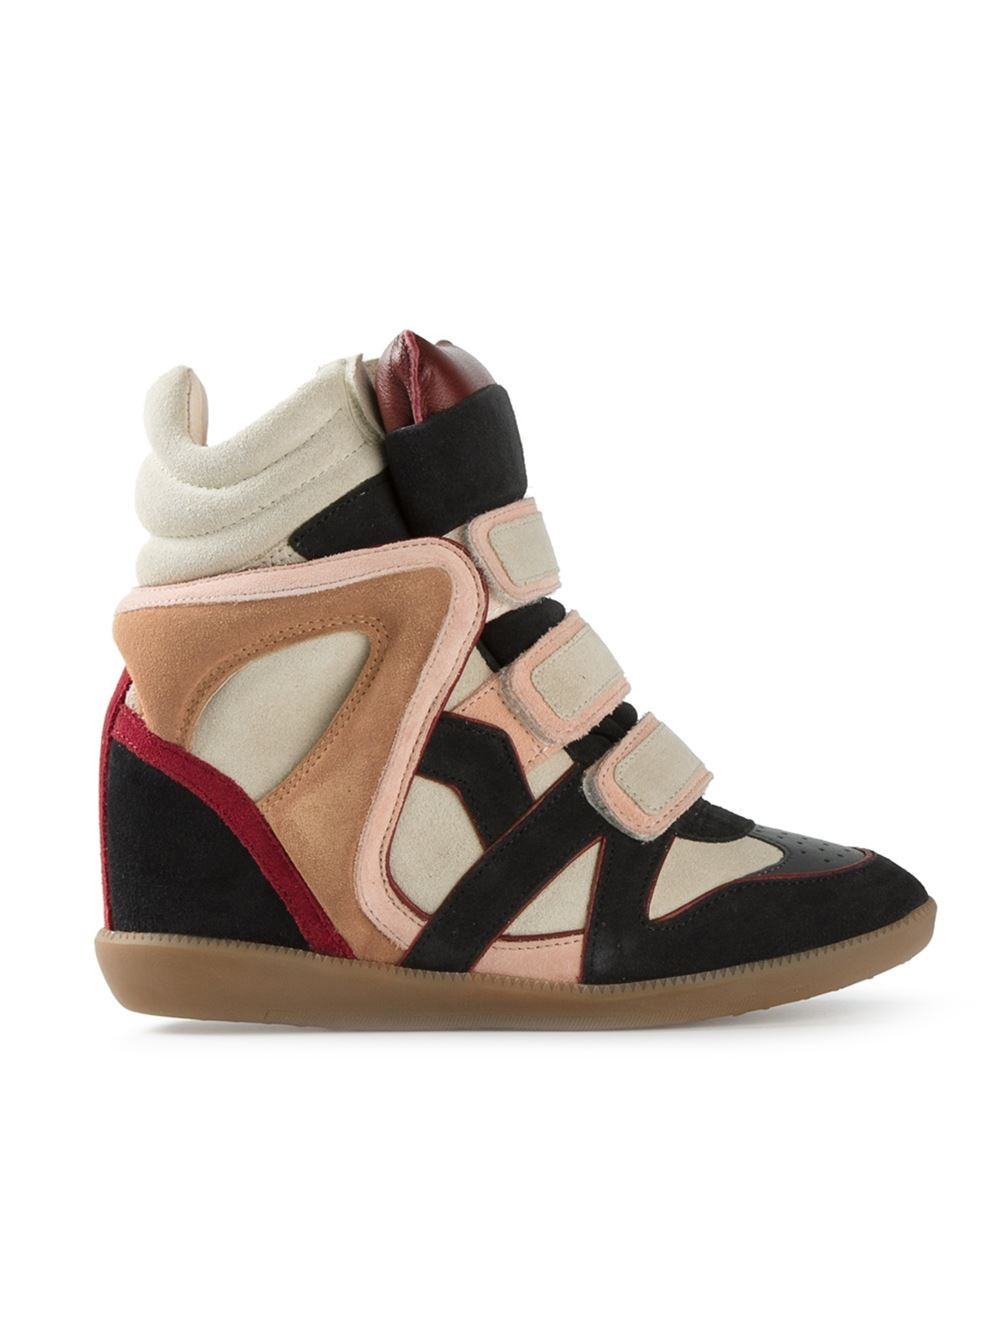 Isabel Marant Wila Hi-Top Multicolor Women's Wedge Sneakers